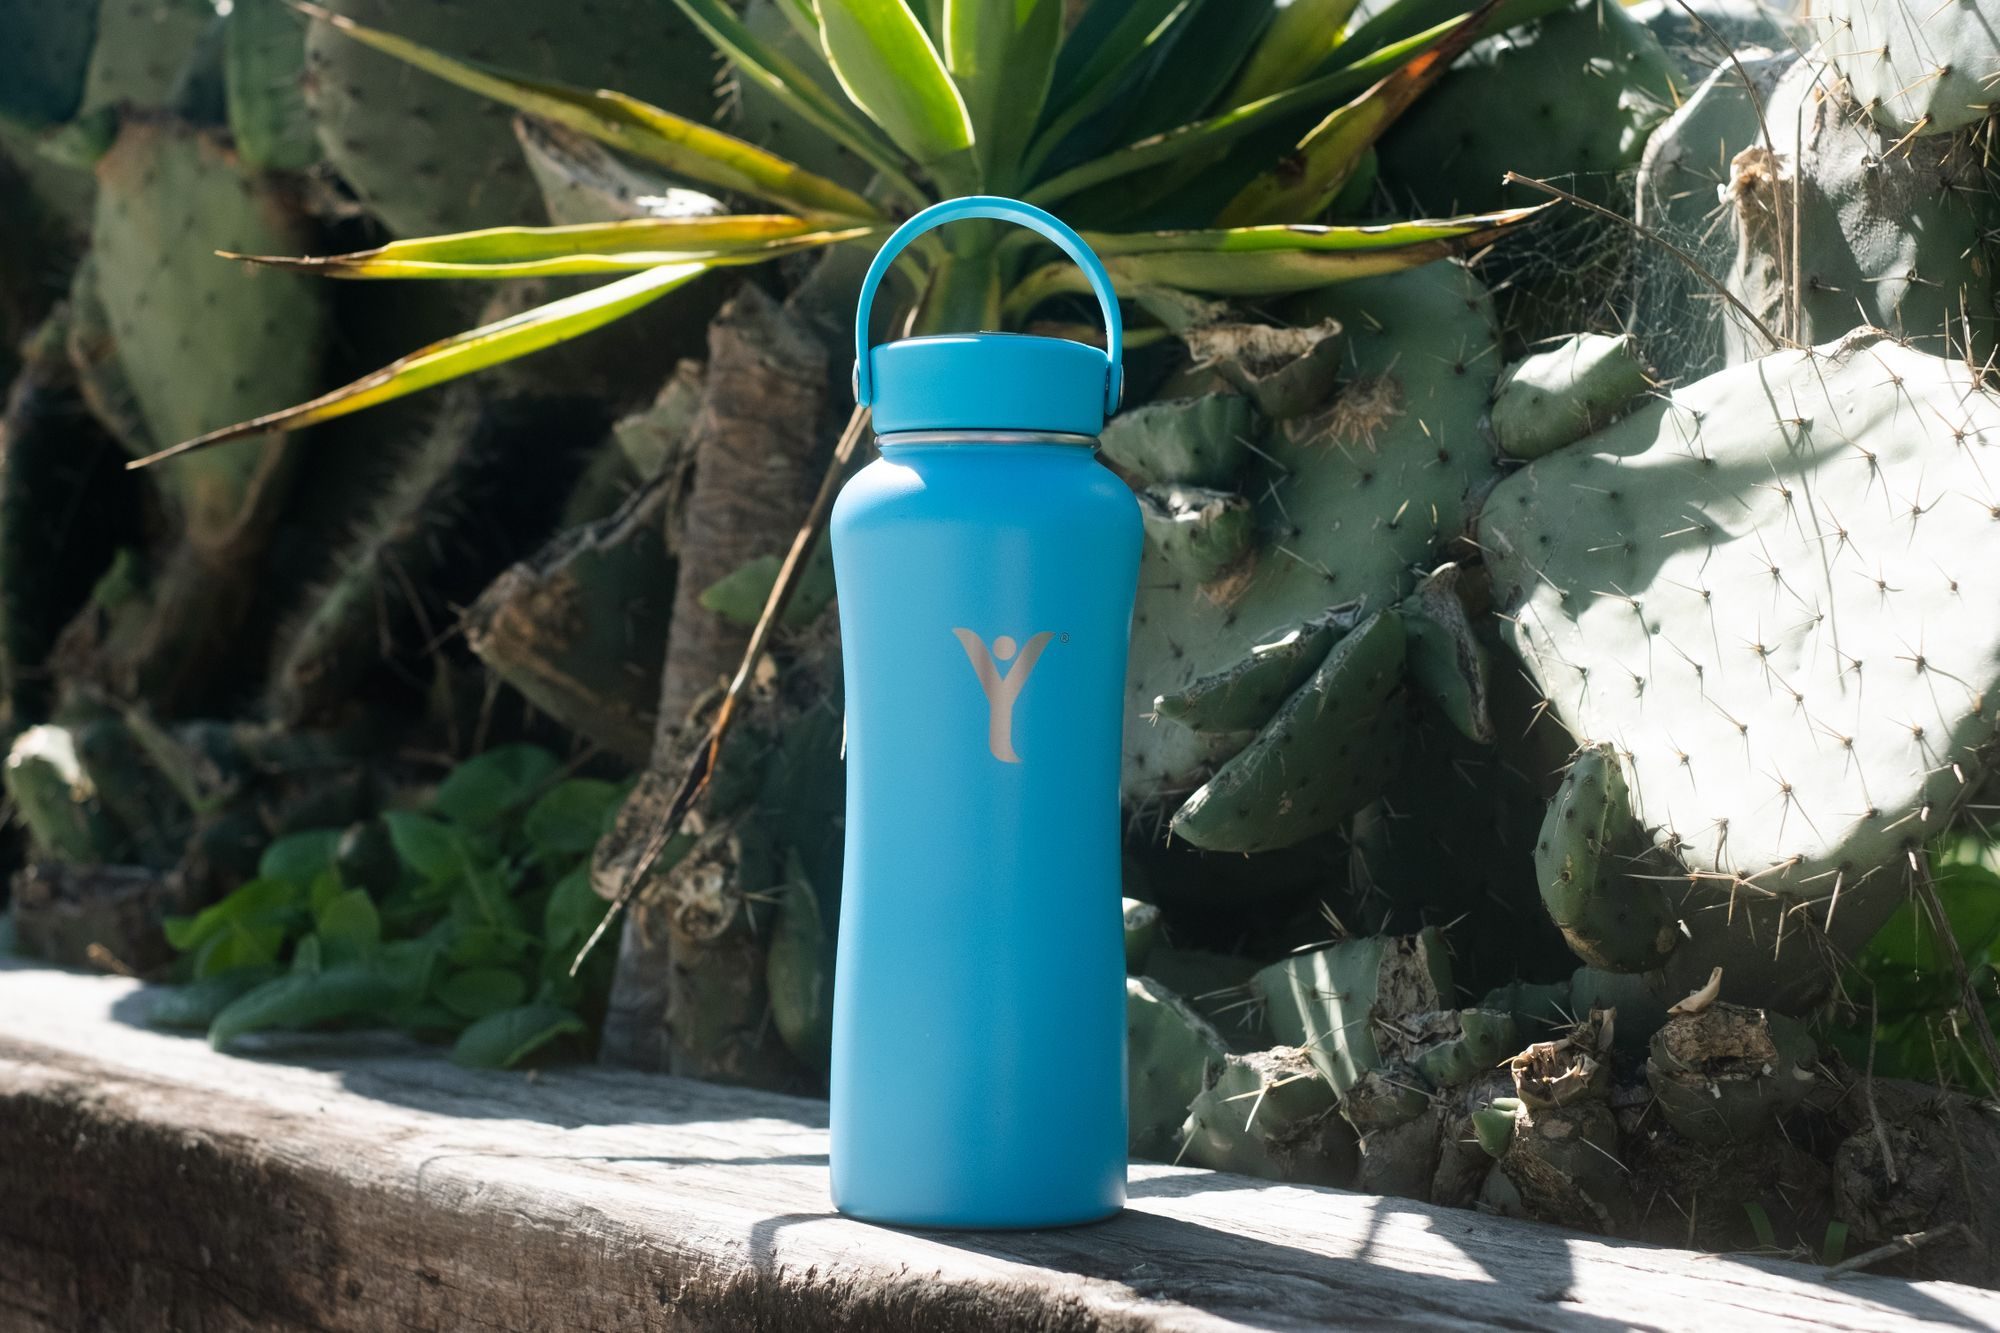 Our DYLN Water Bottles were created to combat the ever-growing problem of plastic waste